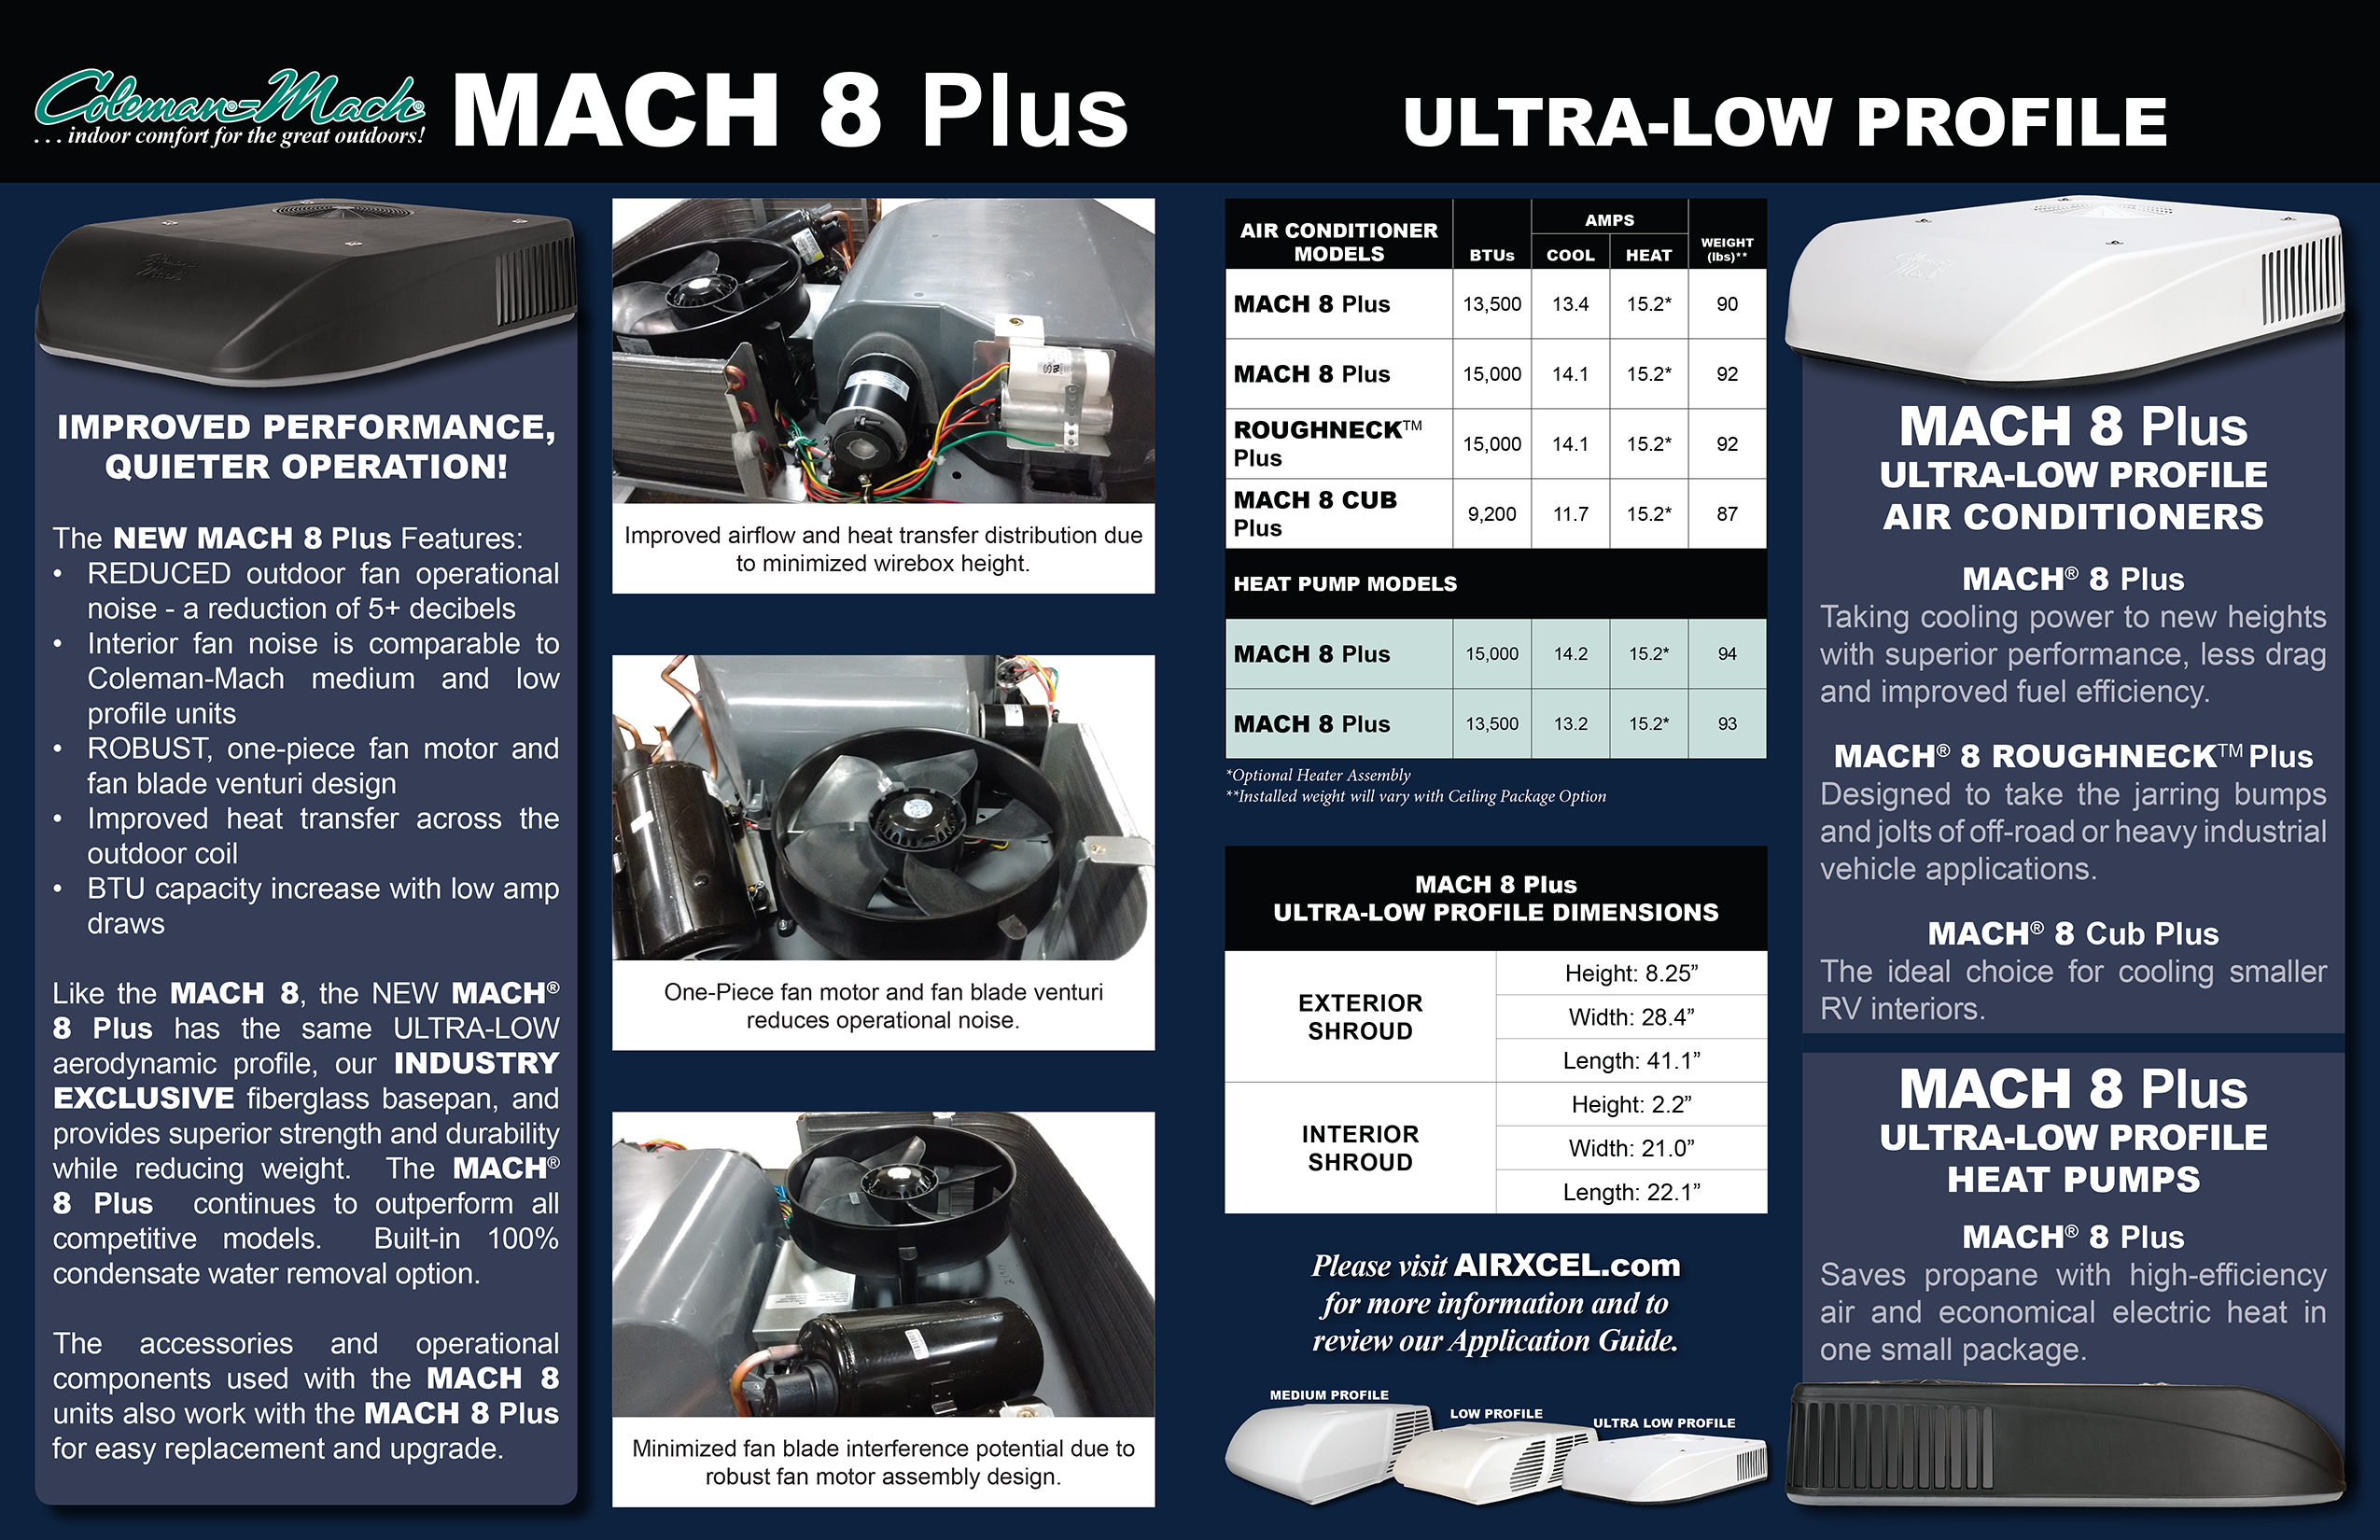 Coleman Mach Mach 8 UltraLow Profile AC Units for RVs Airxcel